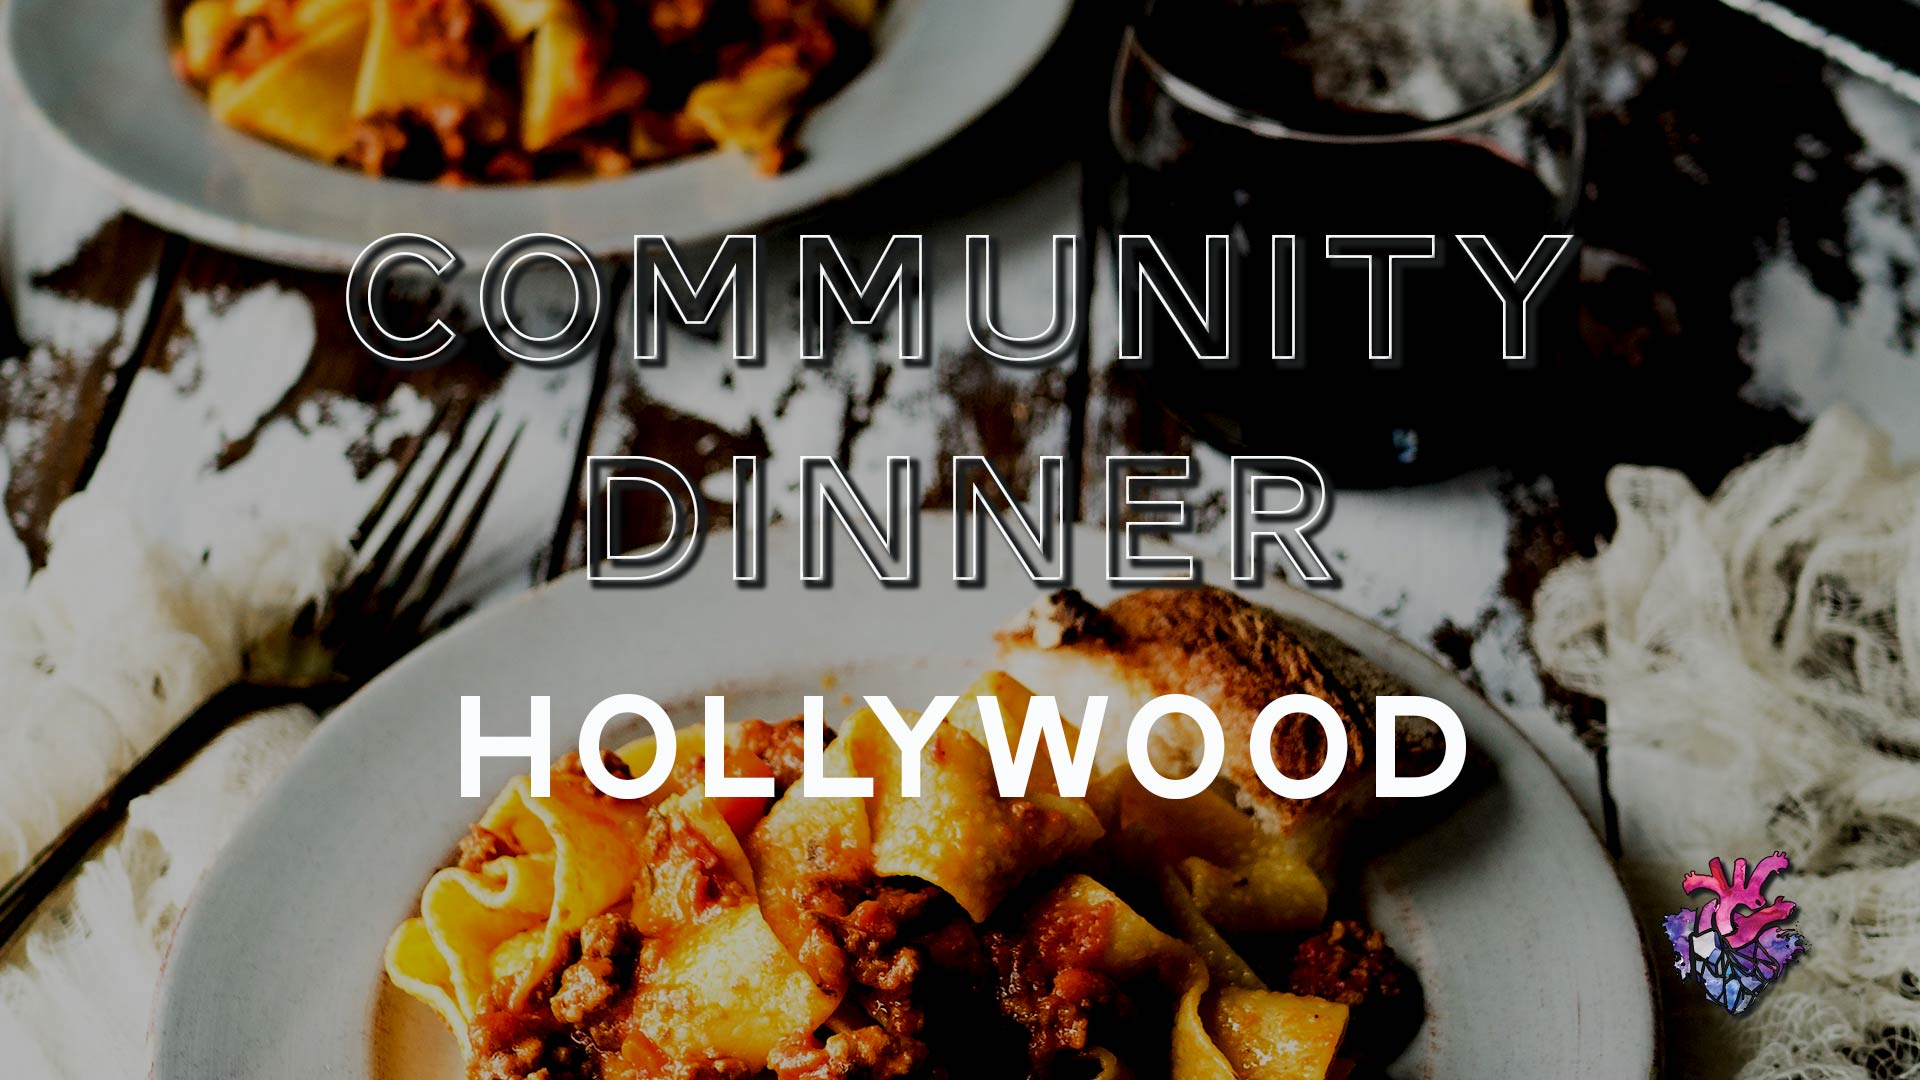 Community-Dinner-Hollywood.jpg